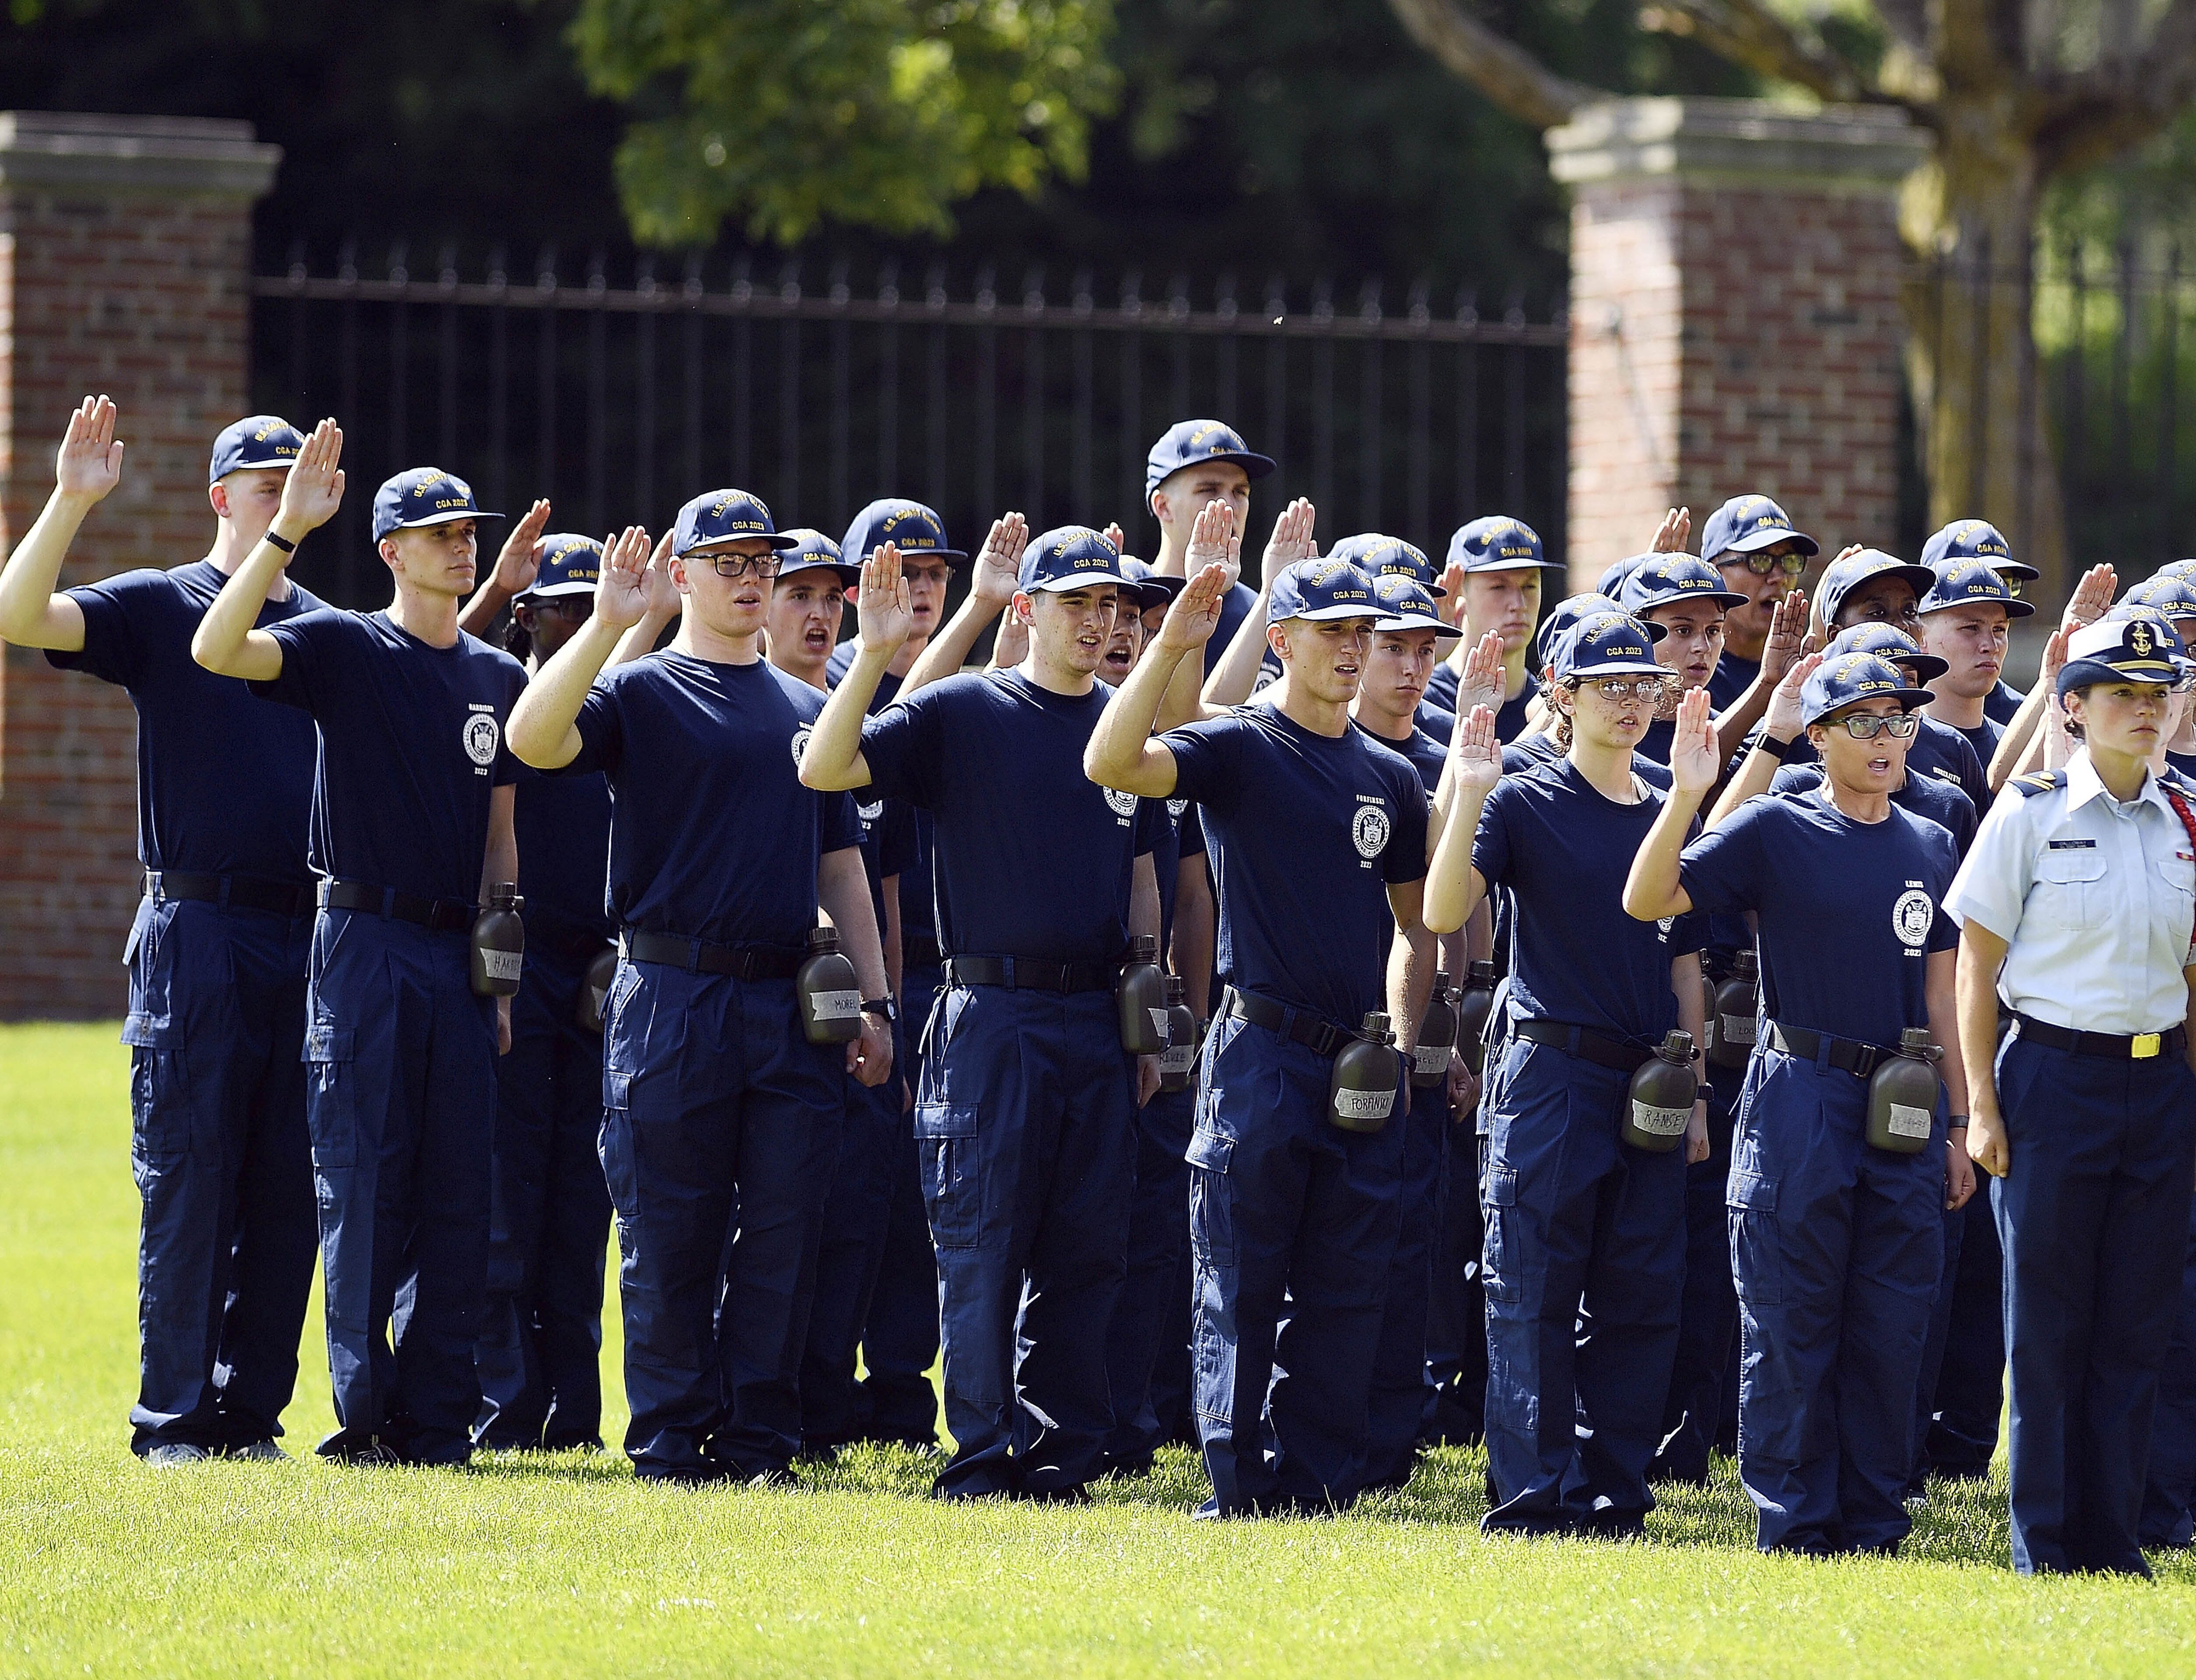 """FILE — In this July 1, 2019 file photo, members of the U.S. Coast Guard Academy Class of 2023 take their oath of office on the first day of Swab Summer in New London, Conn. The school, like other service academies and military training centers, has made major changes because of the coronavirus pandemic. That means the eight weeks of boot camp for new cadets, known as """"Swab Summer,"""" will be much different. There will be no haircuts, no drilling, no running as a group from place to place, no lining up against the wall in the hall of the barracks for pushups. (Sean D. Elliot//The Day via AP, File)"""